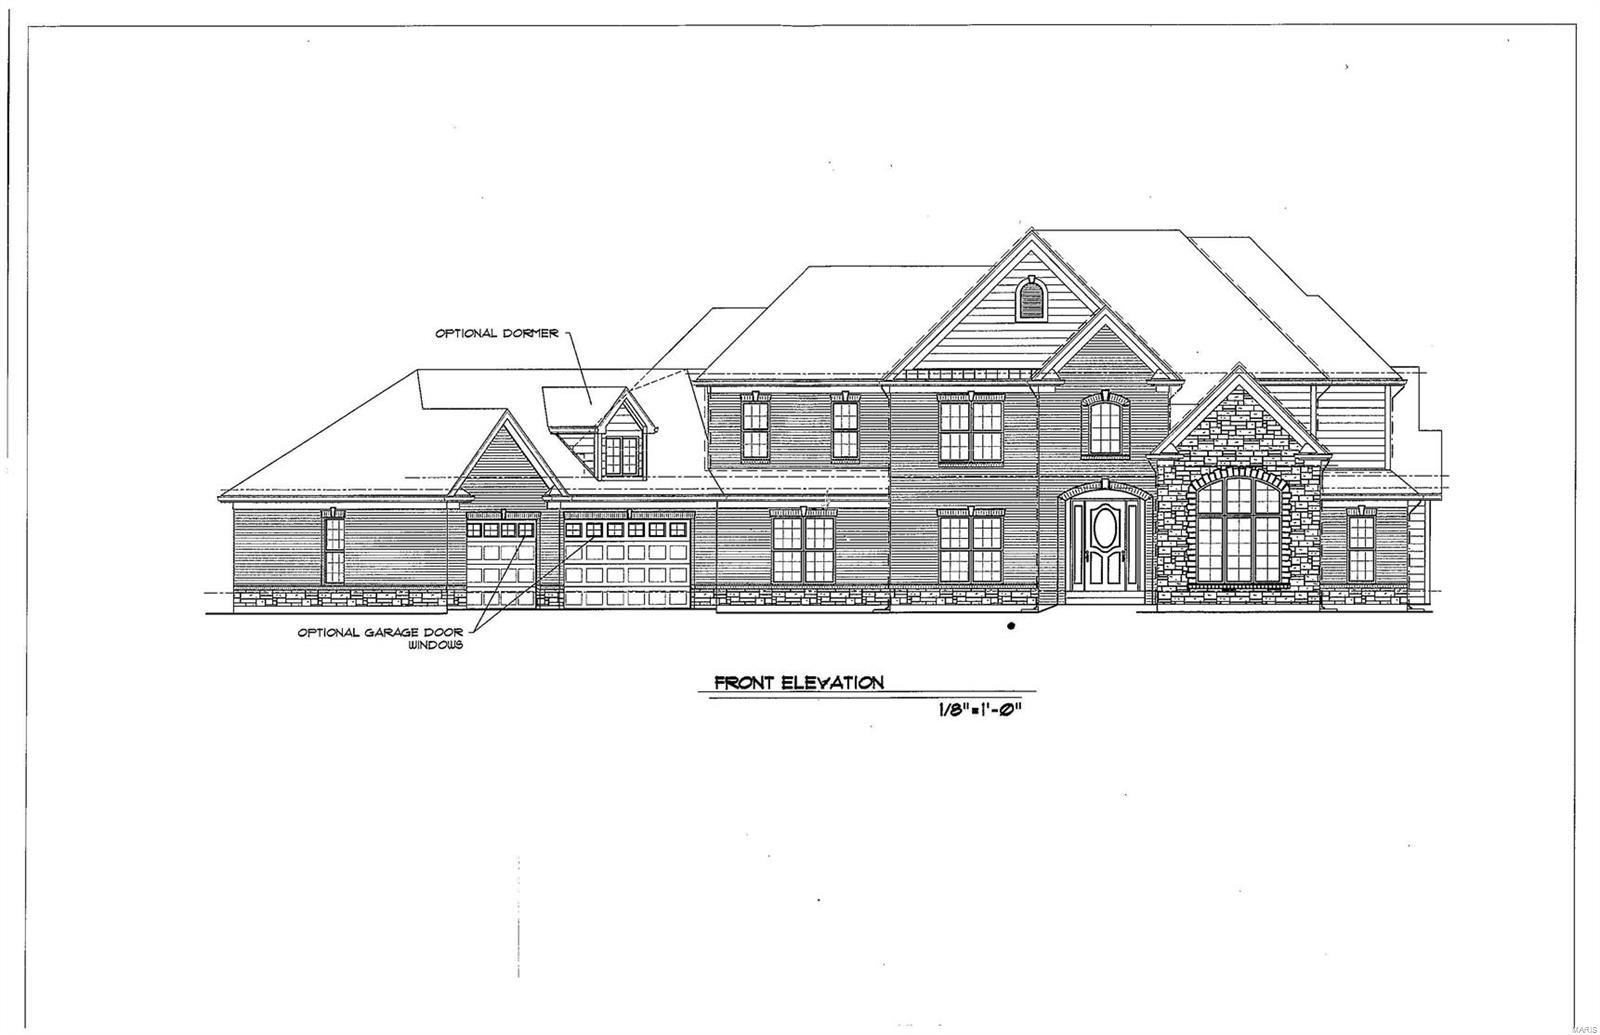 13237 Stone Ct TBB (Lot 3), Town and Country, MO 63131 - MLS#: 20087835